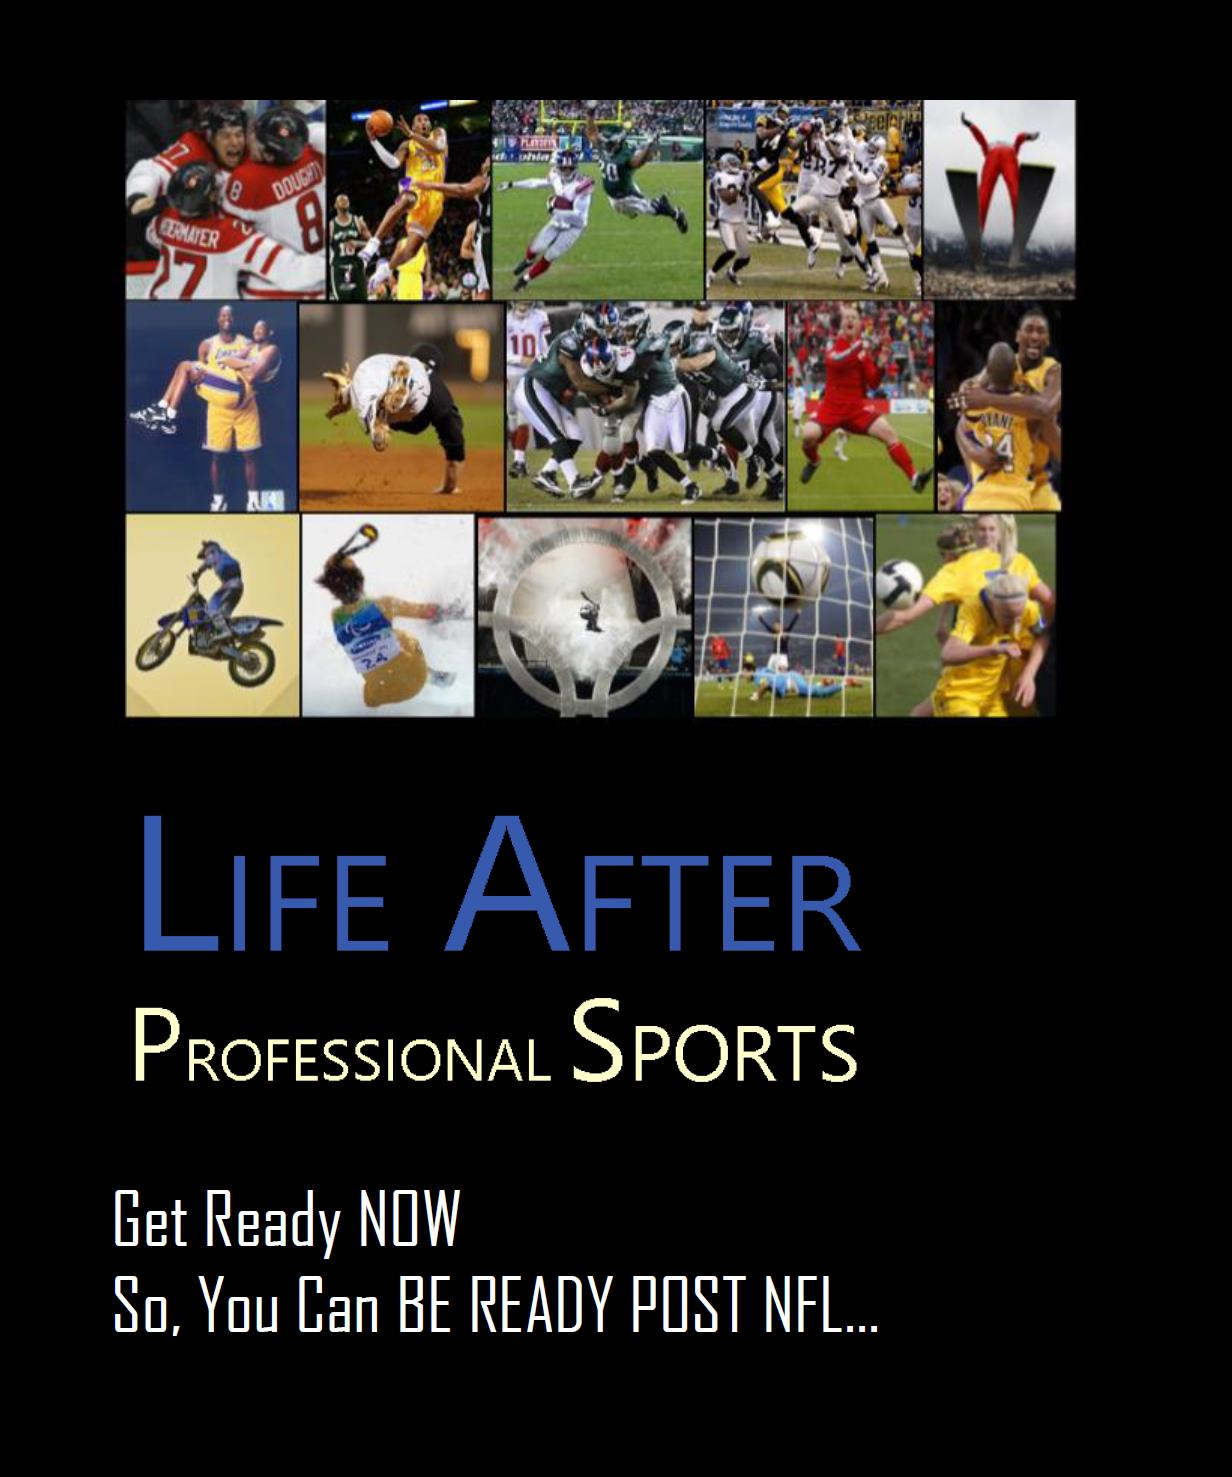 Life After Professional Sports